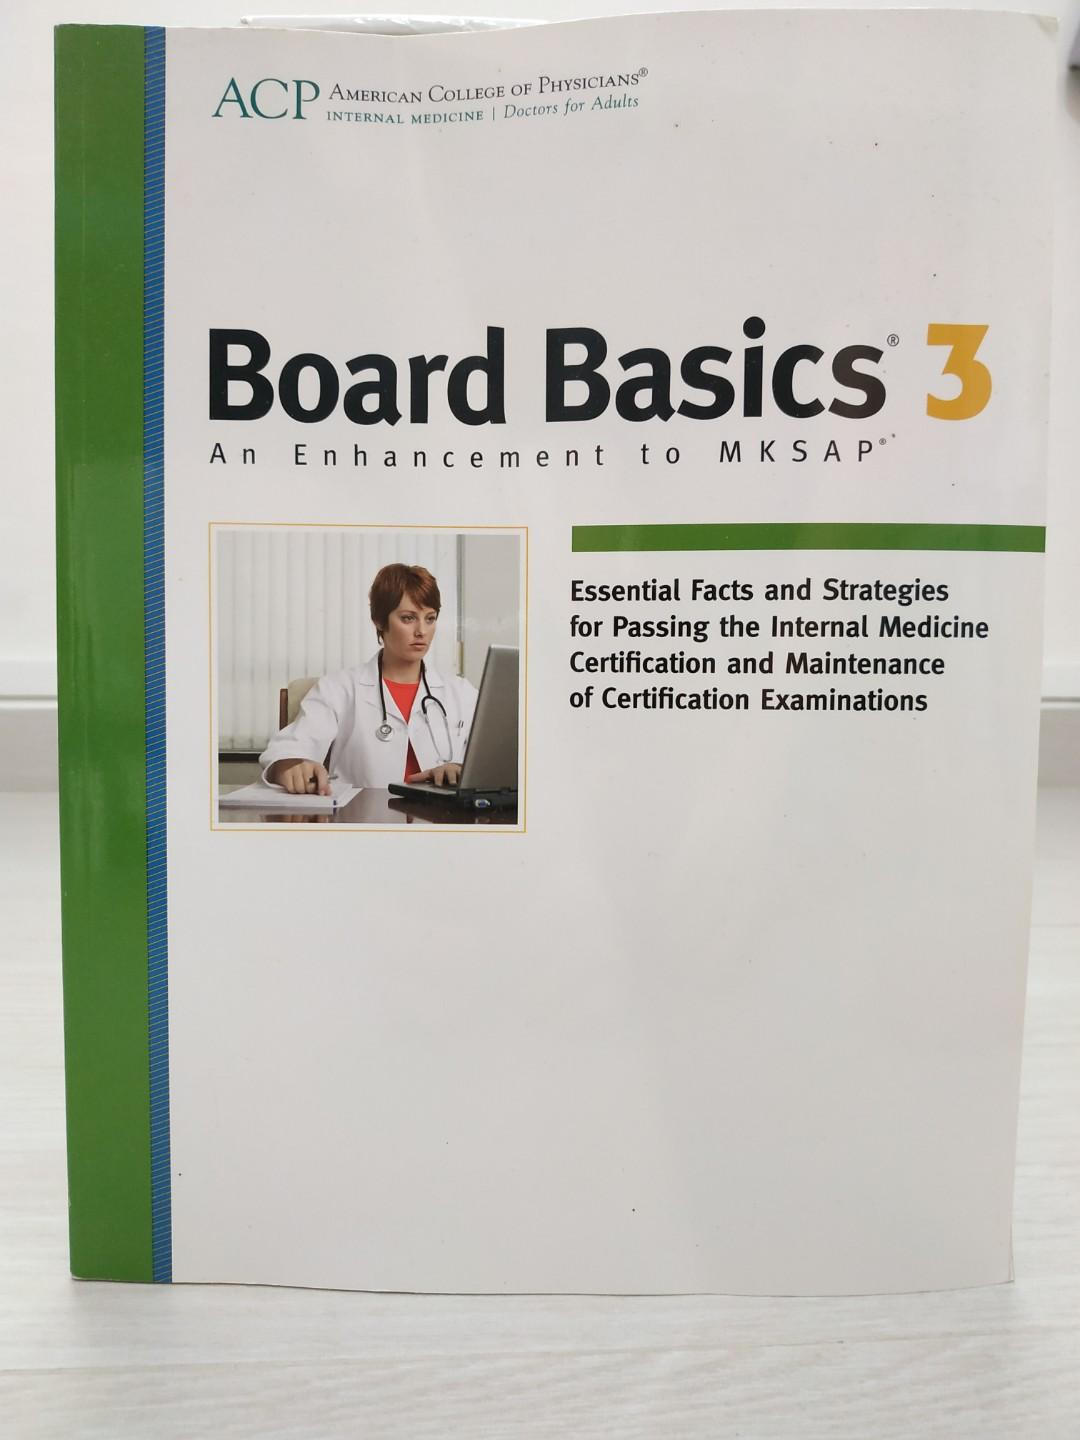 Board Basics 3 -- An Enhancement to MKSAP, Books